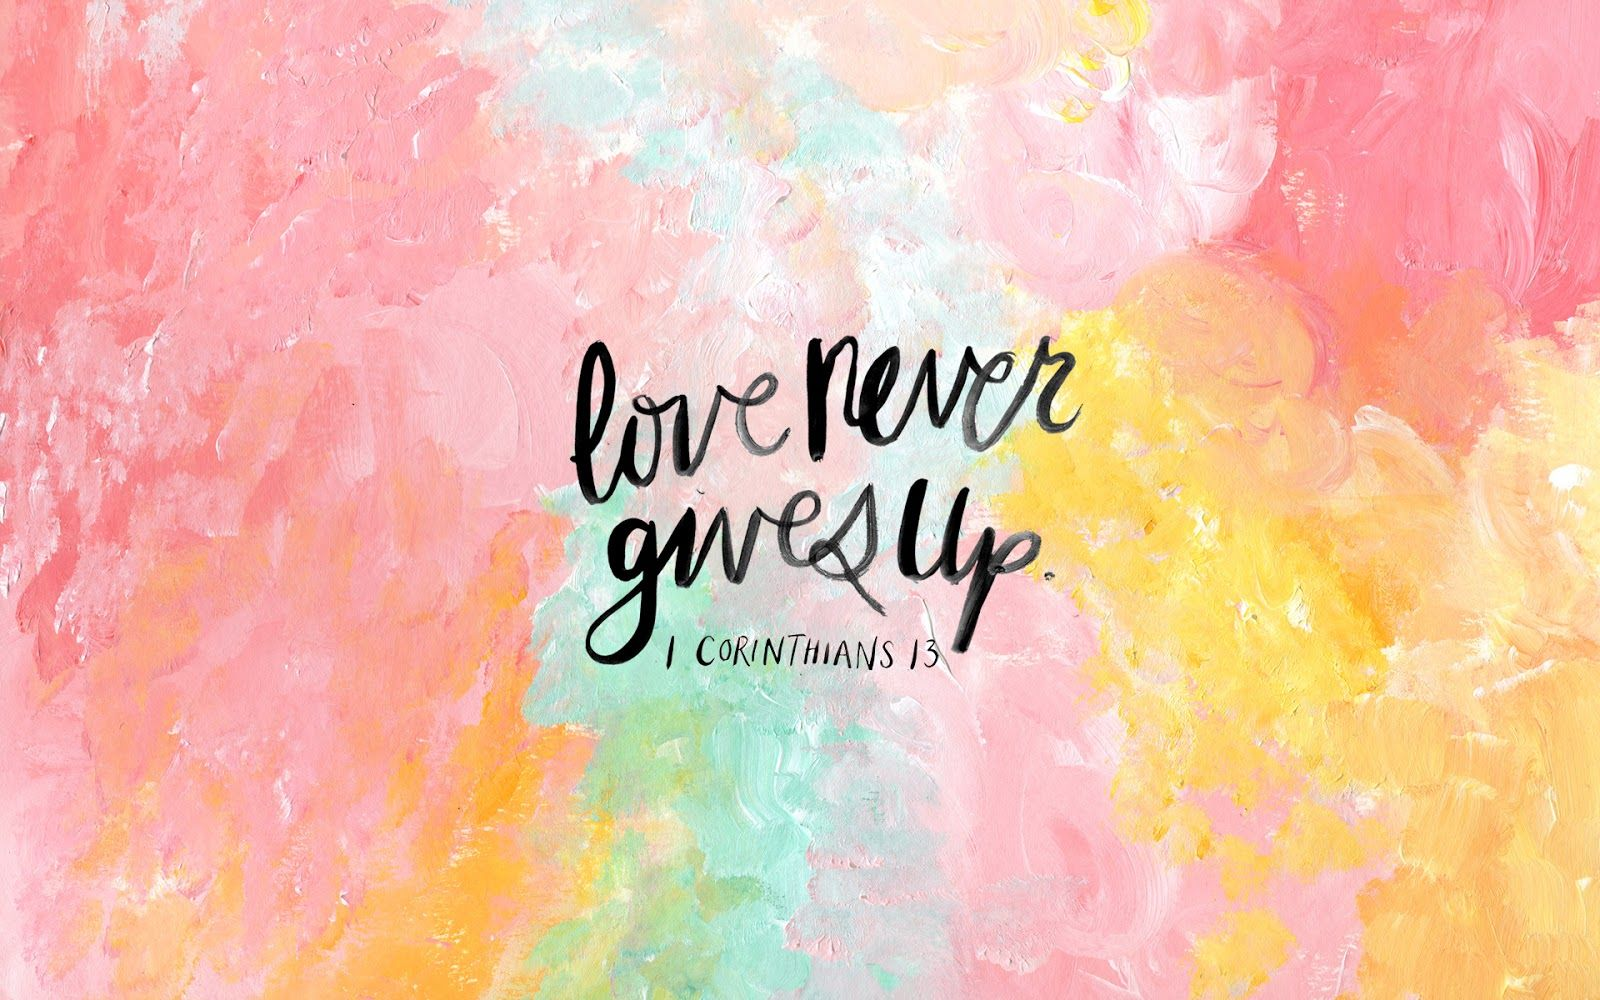 Love Quotes Wallpaper For Laptop : love never gives up Scenes Pinterest Baggage, Wallpaper and Verses